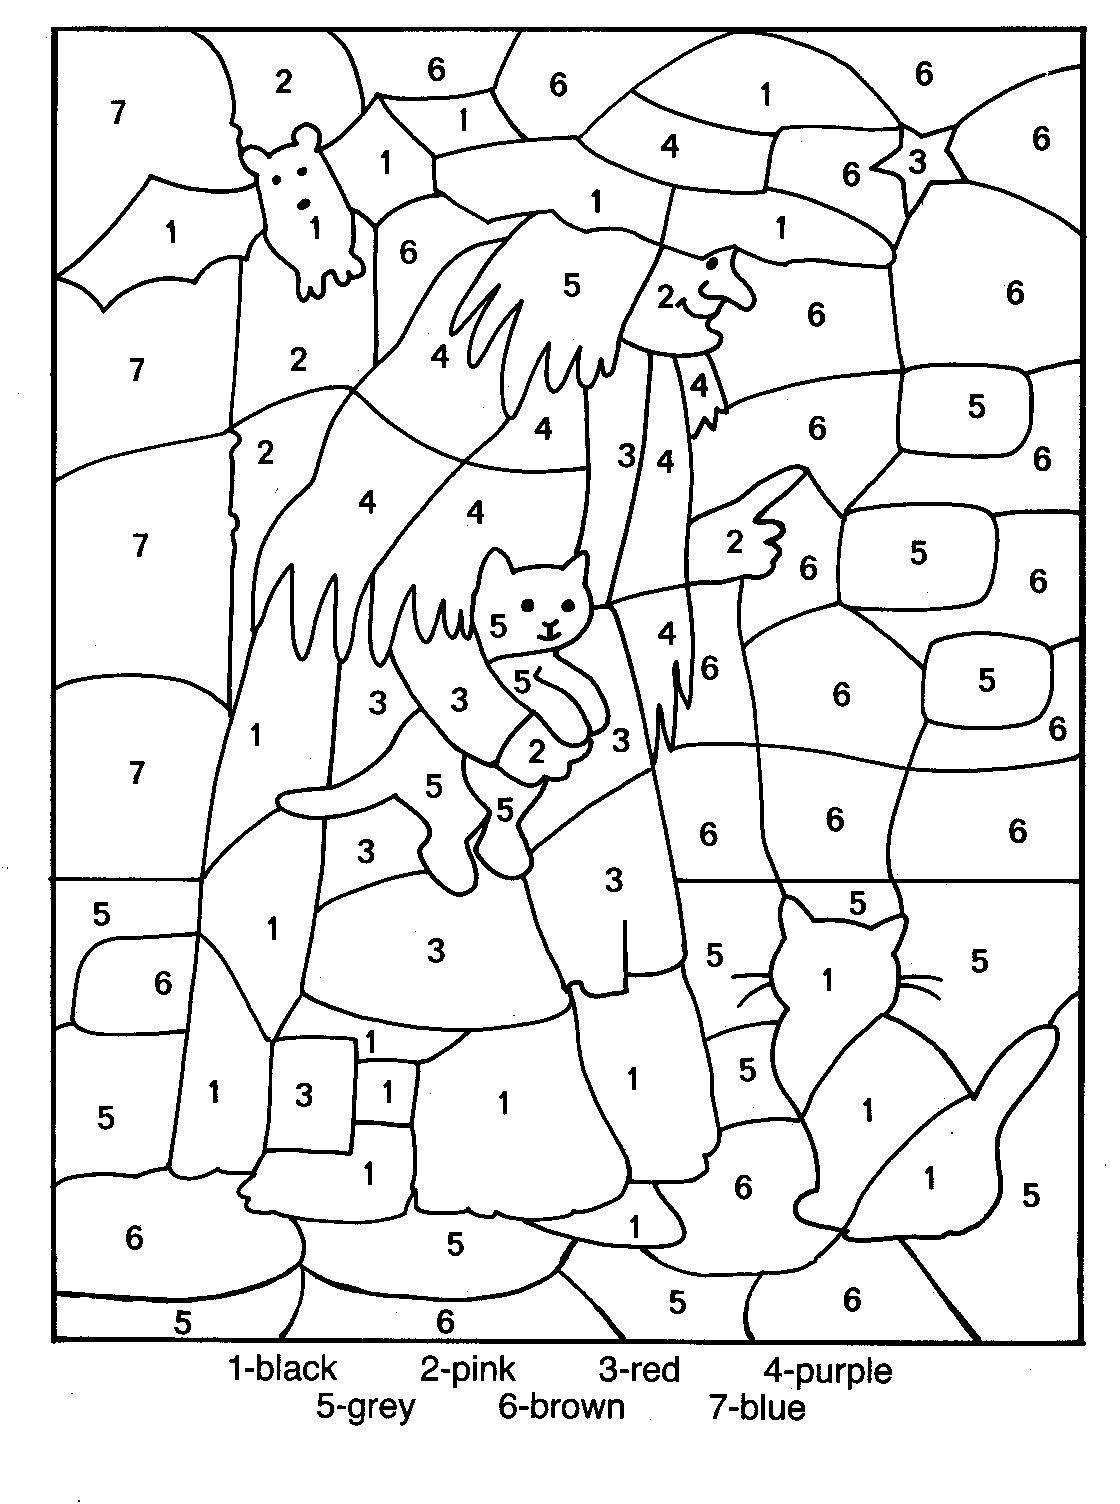 color by number pages for adults free printable color by number coloring pages best number color by adults pages for